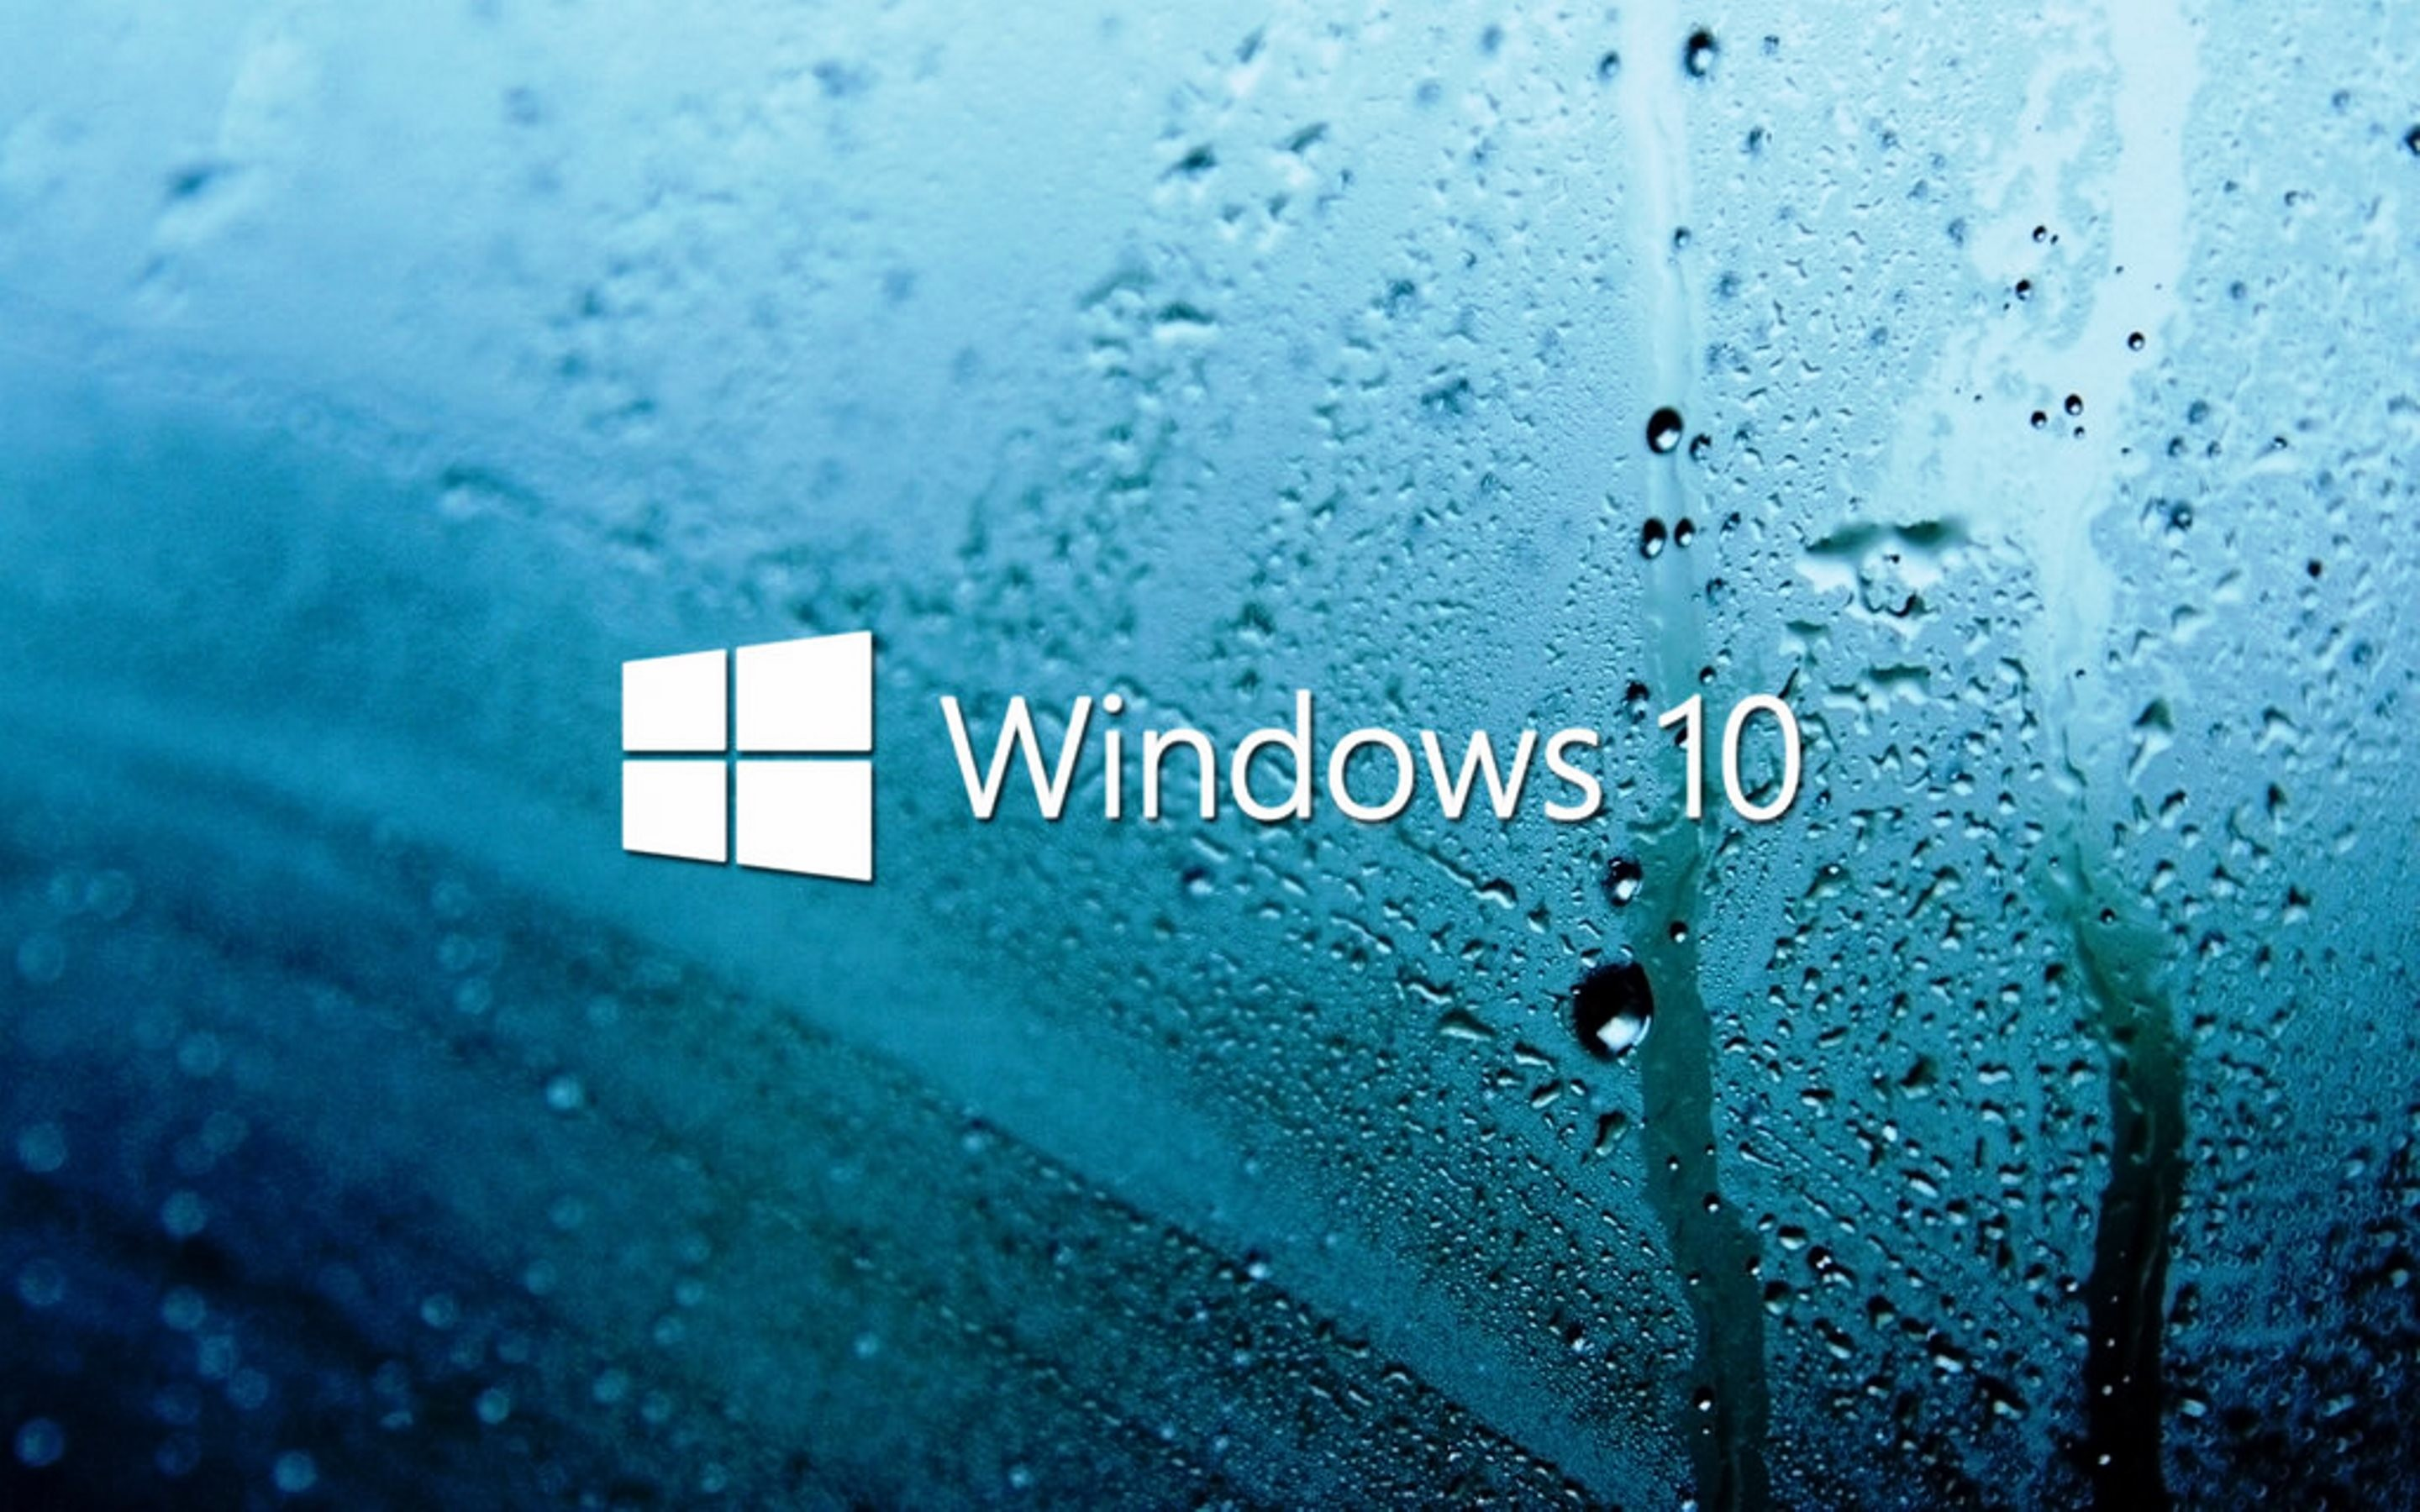 Dark Windows 10 Wallpapers White Water Simple Classic Adjustable  Personalized Themes Motive